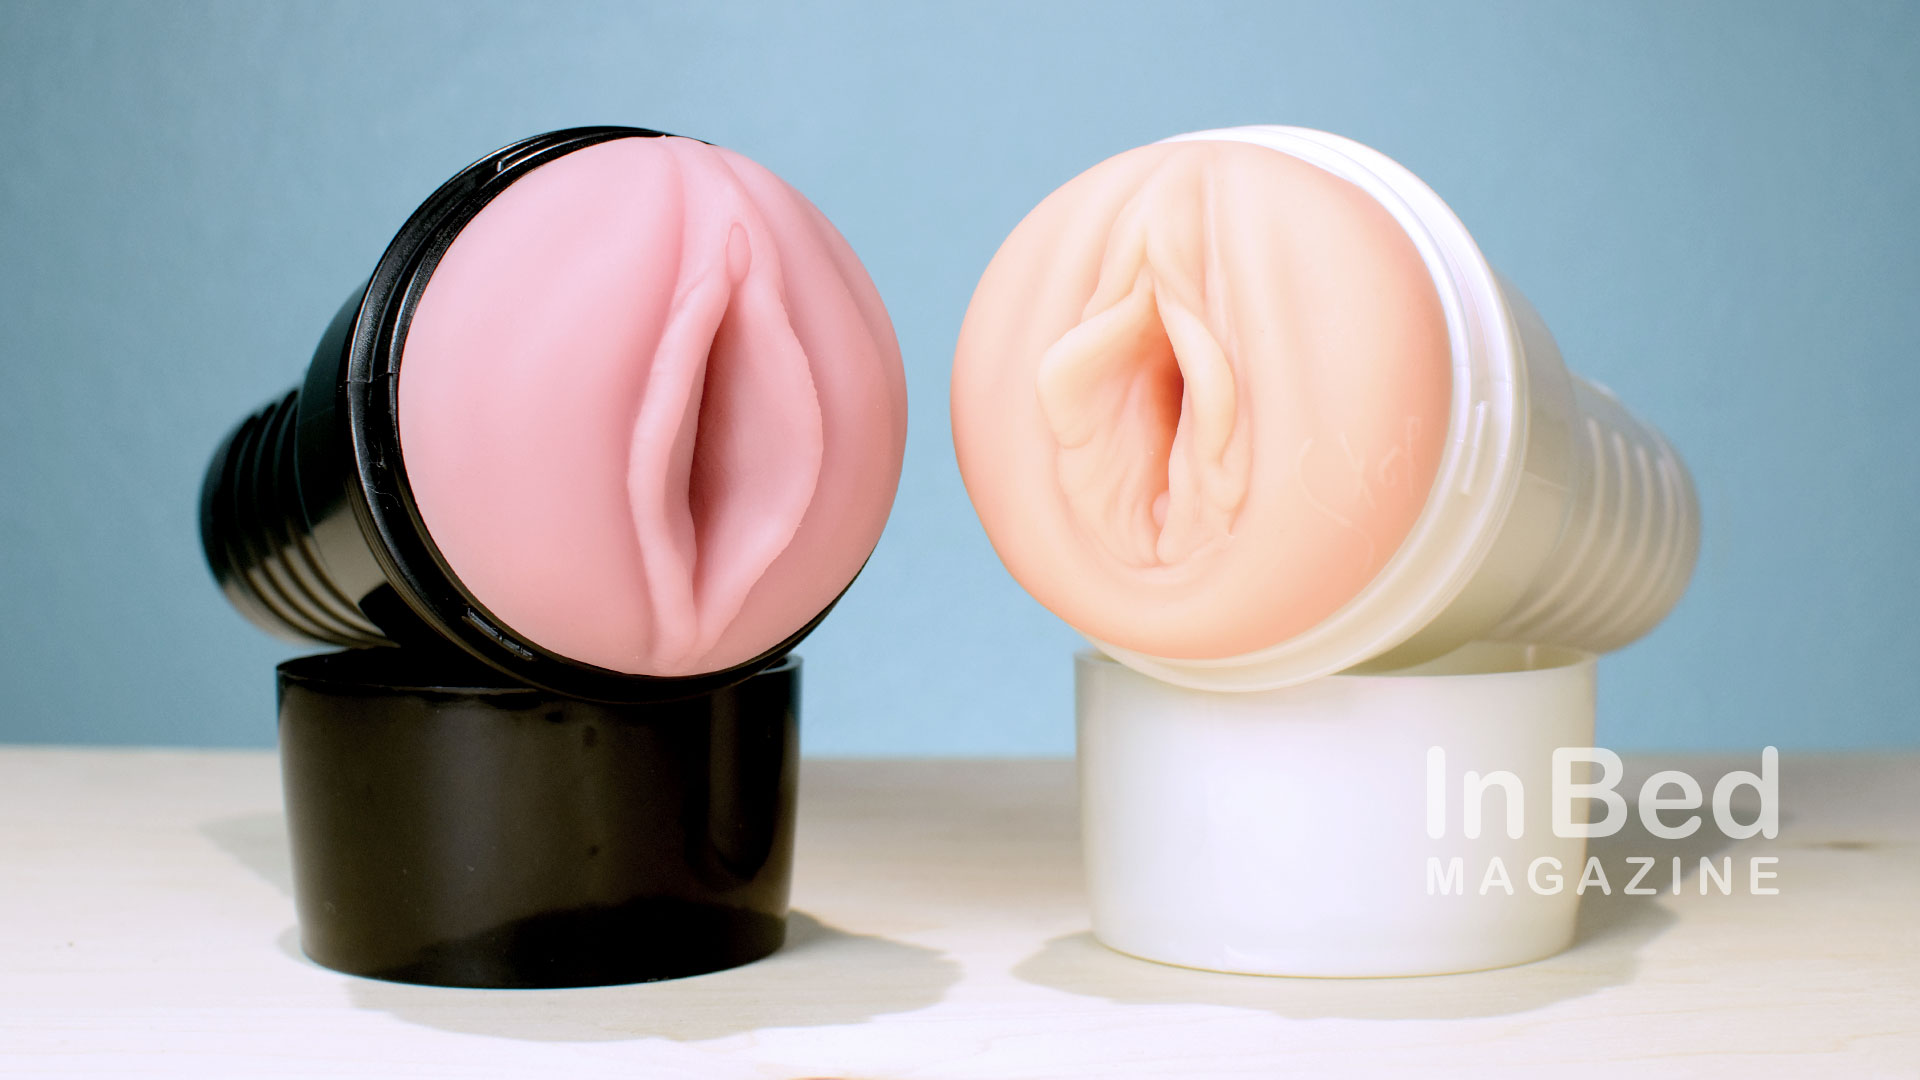 Insurance Cover Fleshlight